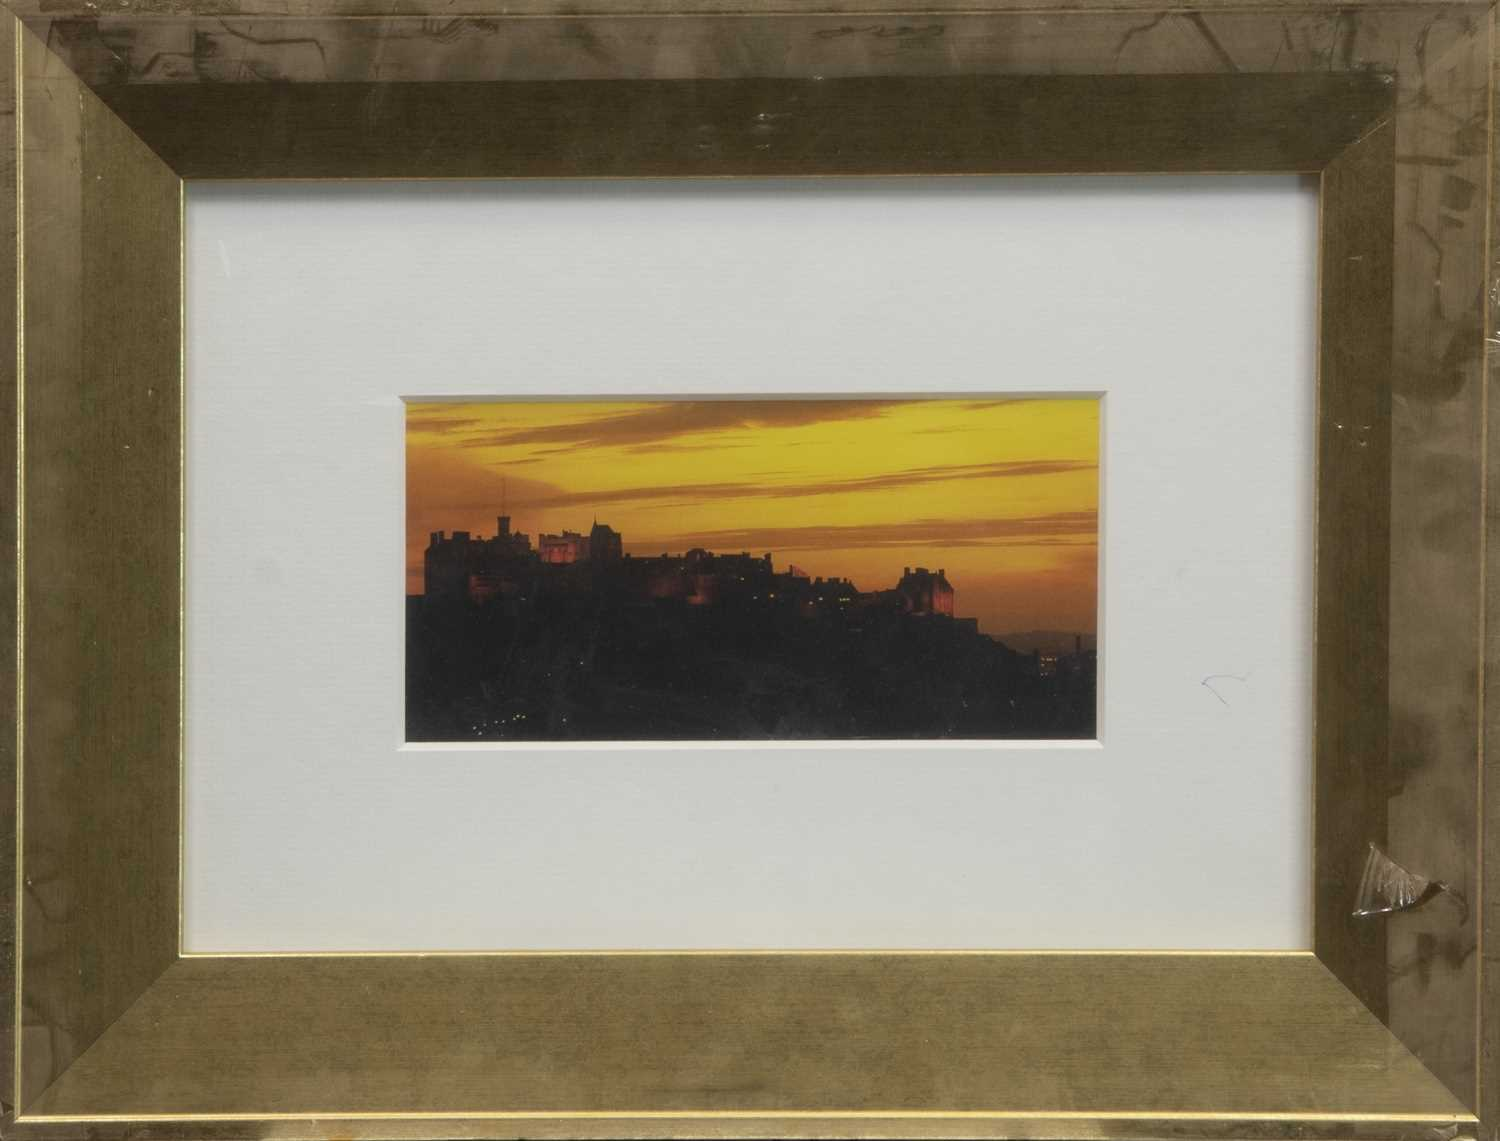 Lot 148 - SKYLINE, A FRAMED PRINT